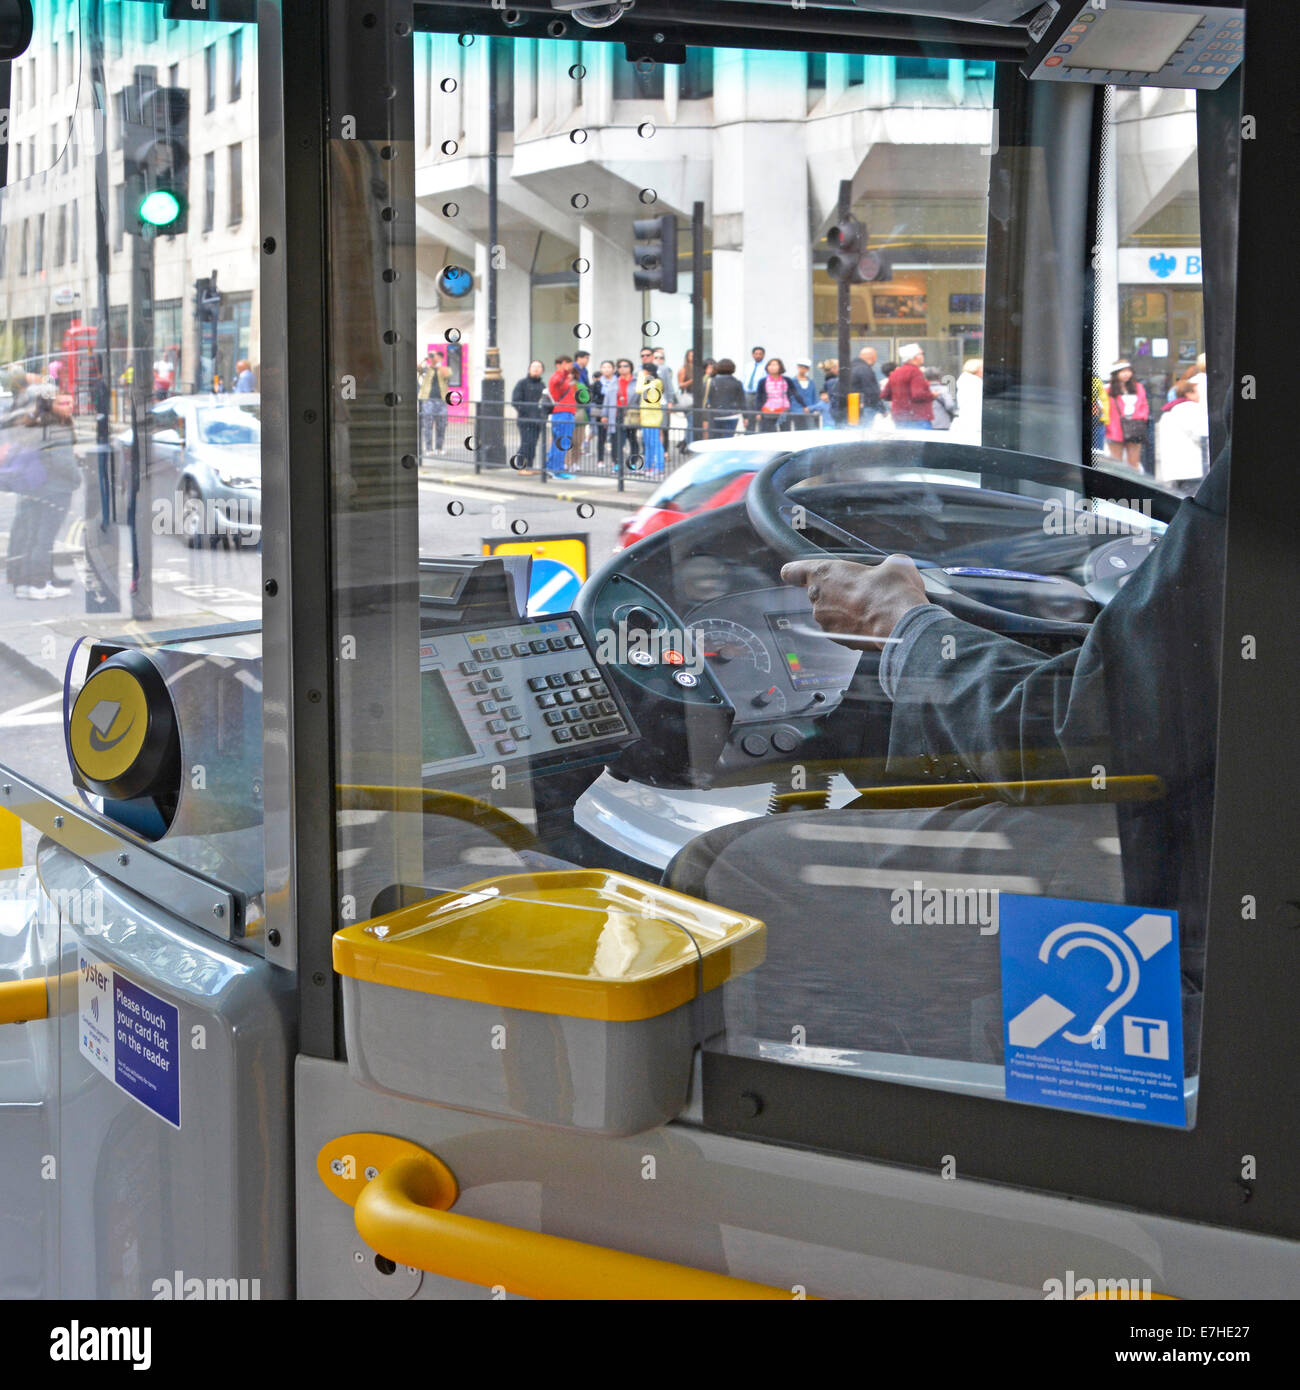 London bus driver at work right hand drive steering wheel interior cab with Oyster card reader and hearing pictogram - Stock Image